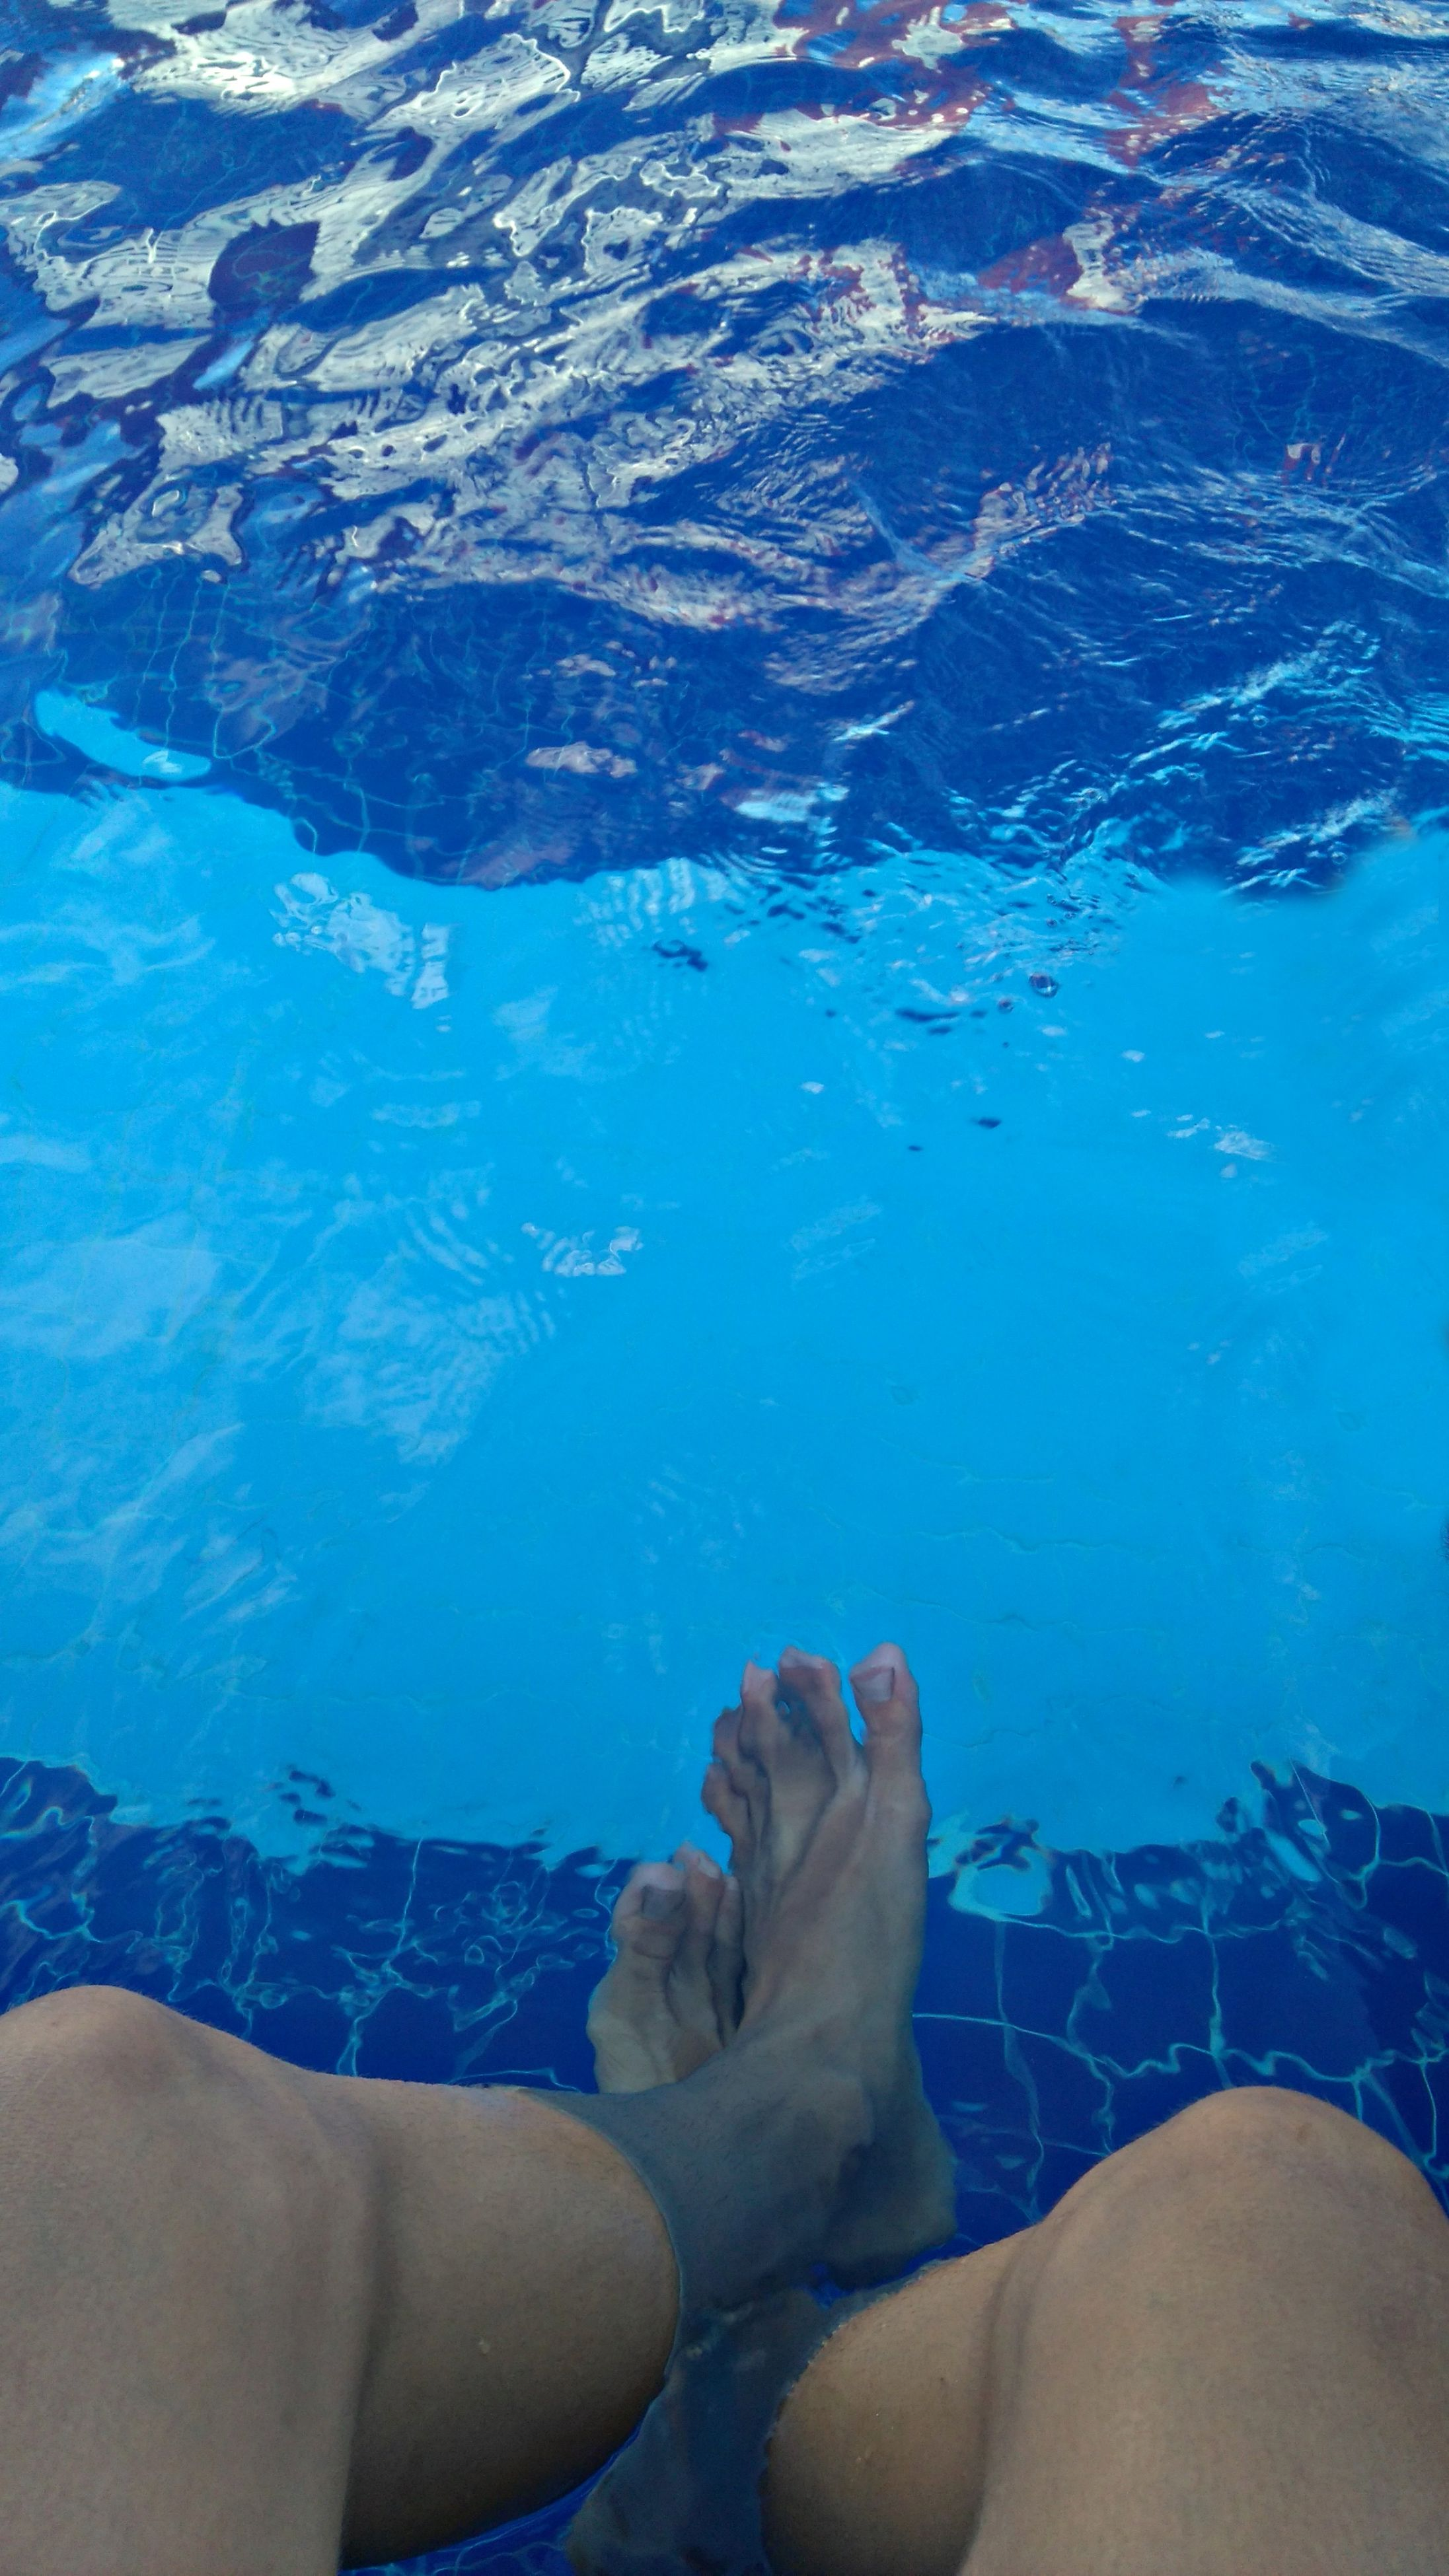 water, blue, low section, human foot, barefoot, human leg, swimming pool, underwater, lifestyles, women, real people, men, outdoors, day, togetherness, nature, one person, close-up, human body part, people, adult, undersea